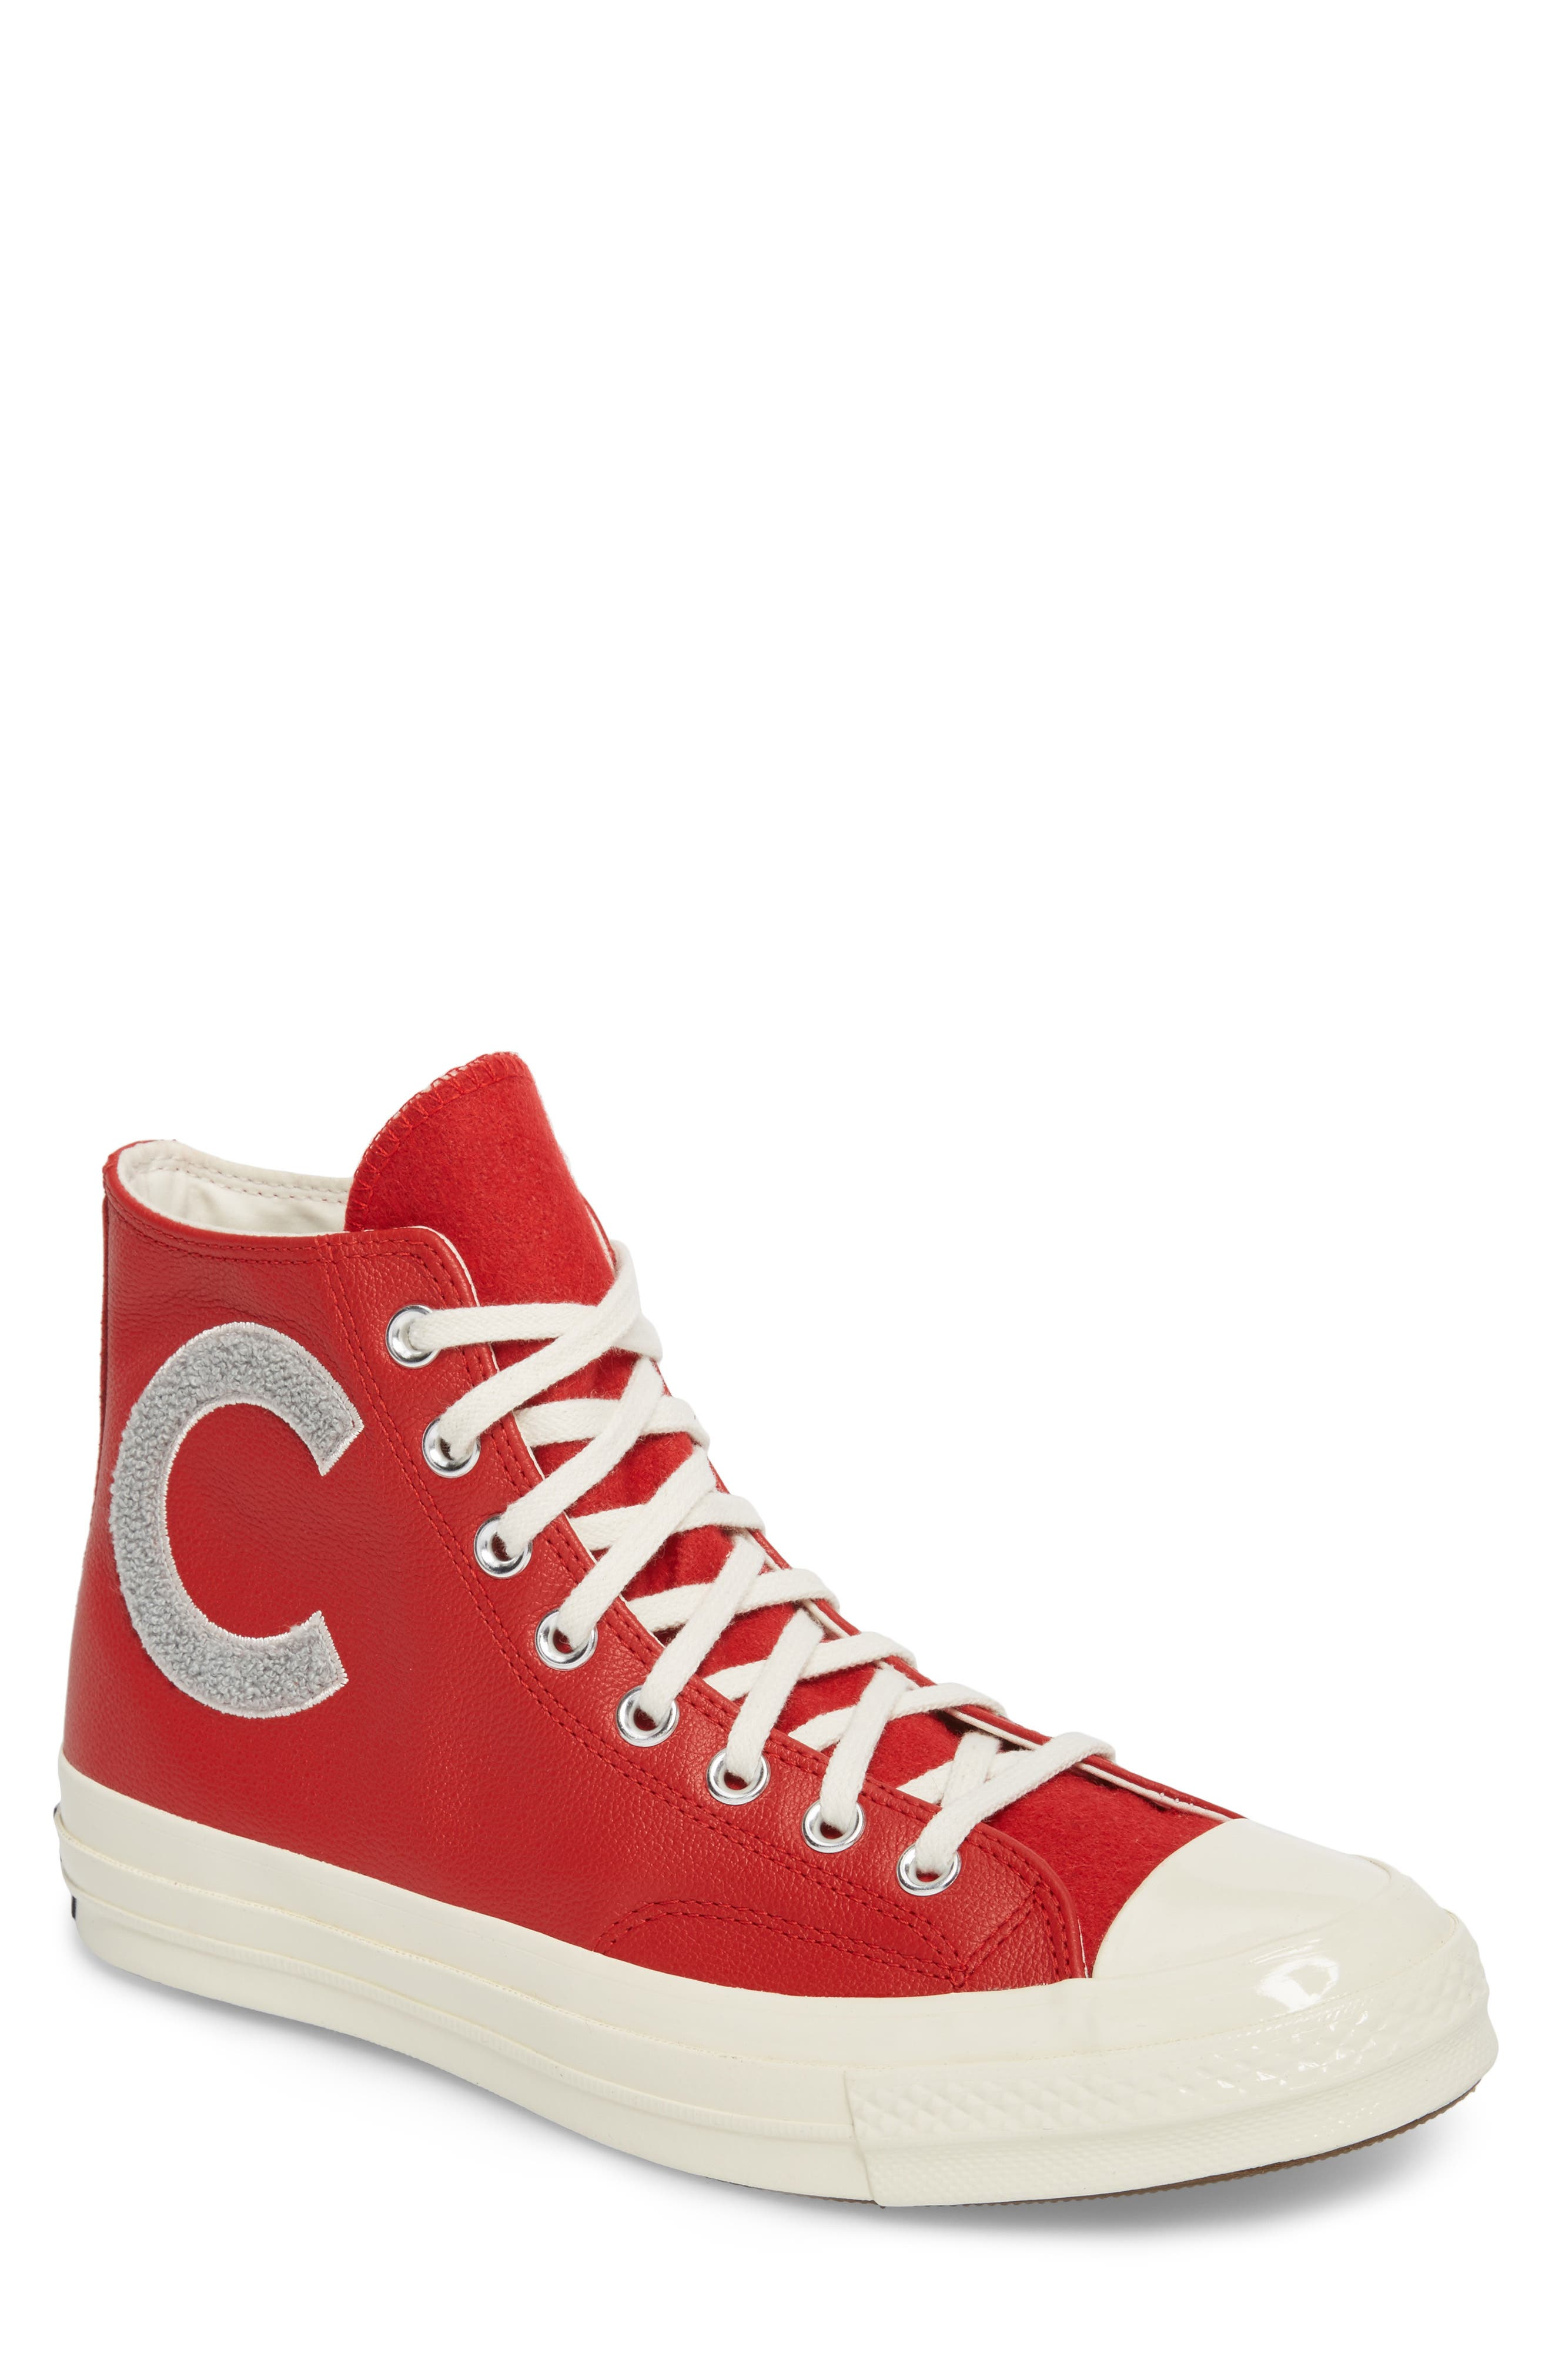 Chuck Taylor<sup>®</sup> All Star<sup>®</sup> Wordmark High Top Sneaker,                         Main,                         color, Enamel Red Leather